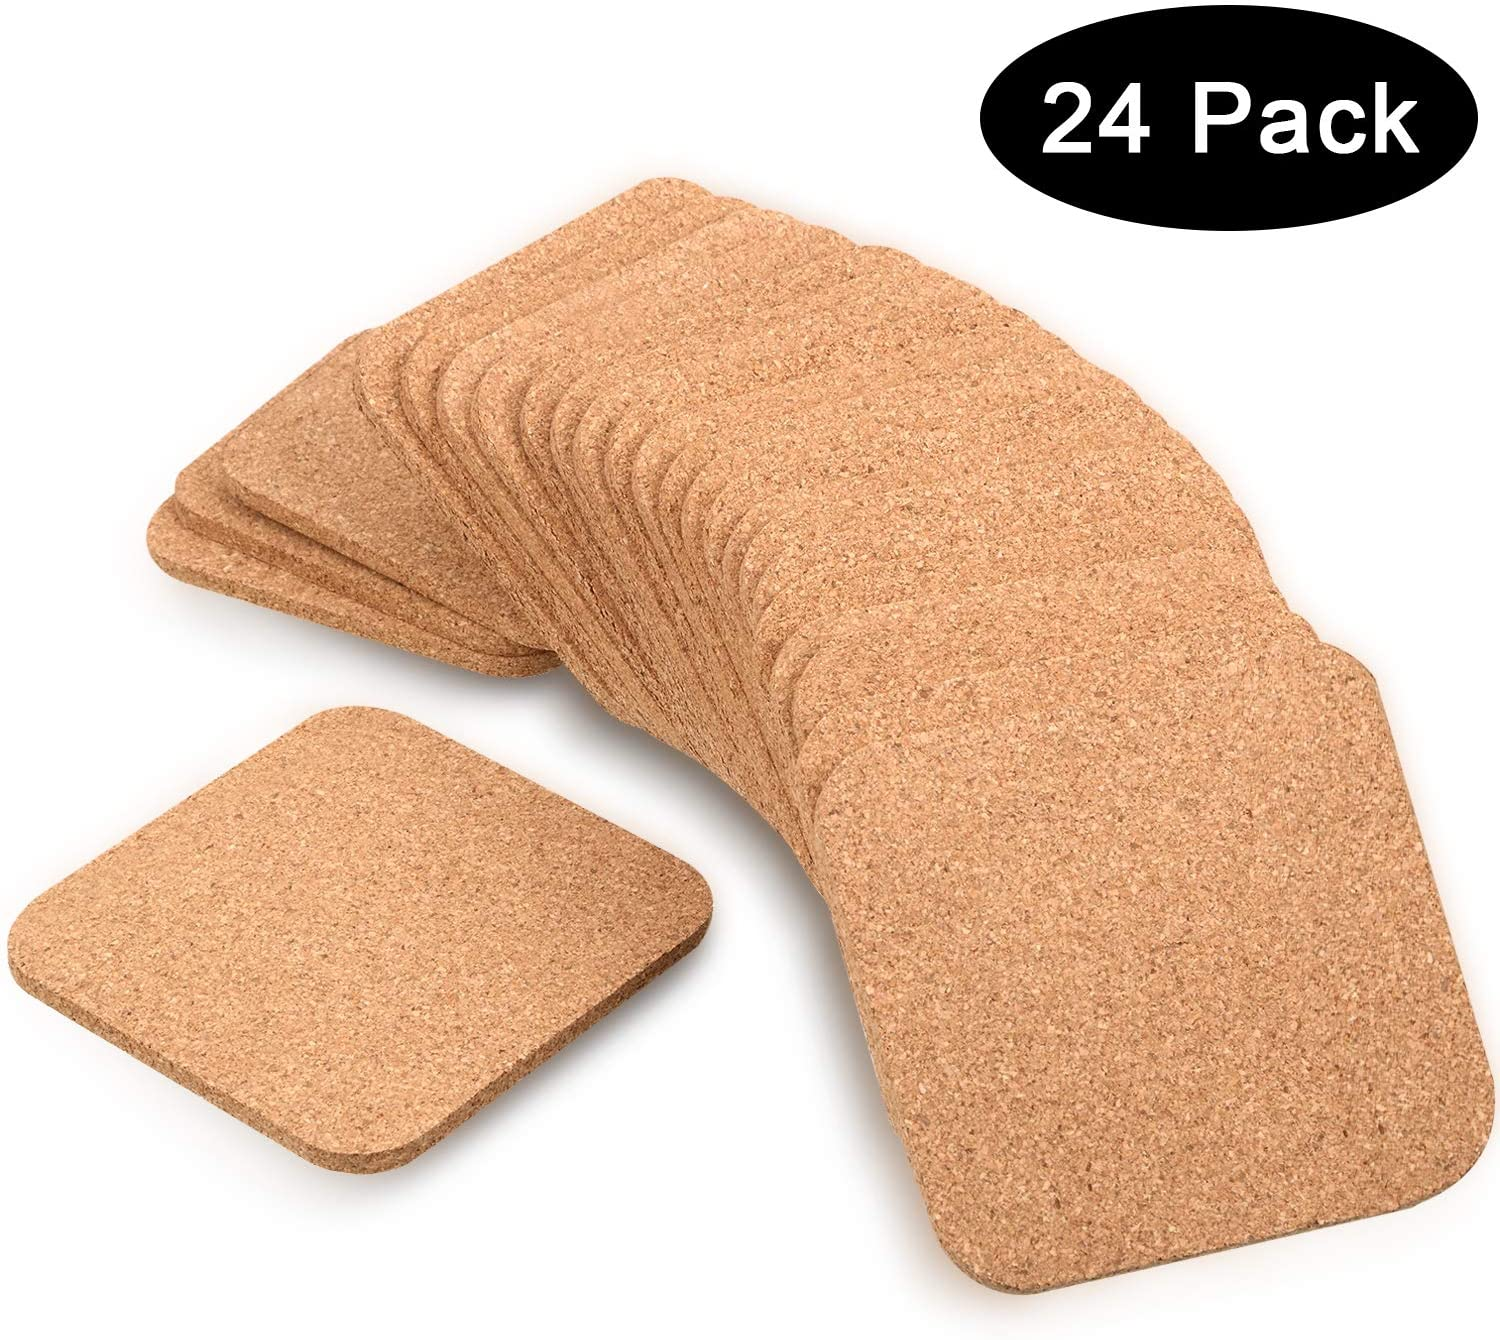 24 Pieces 5 mm Thick Wooden Cork Coasters Absorbent Square Drink Coasters Cork Trivet Mats, 4 x 4 Inch